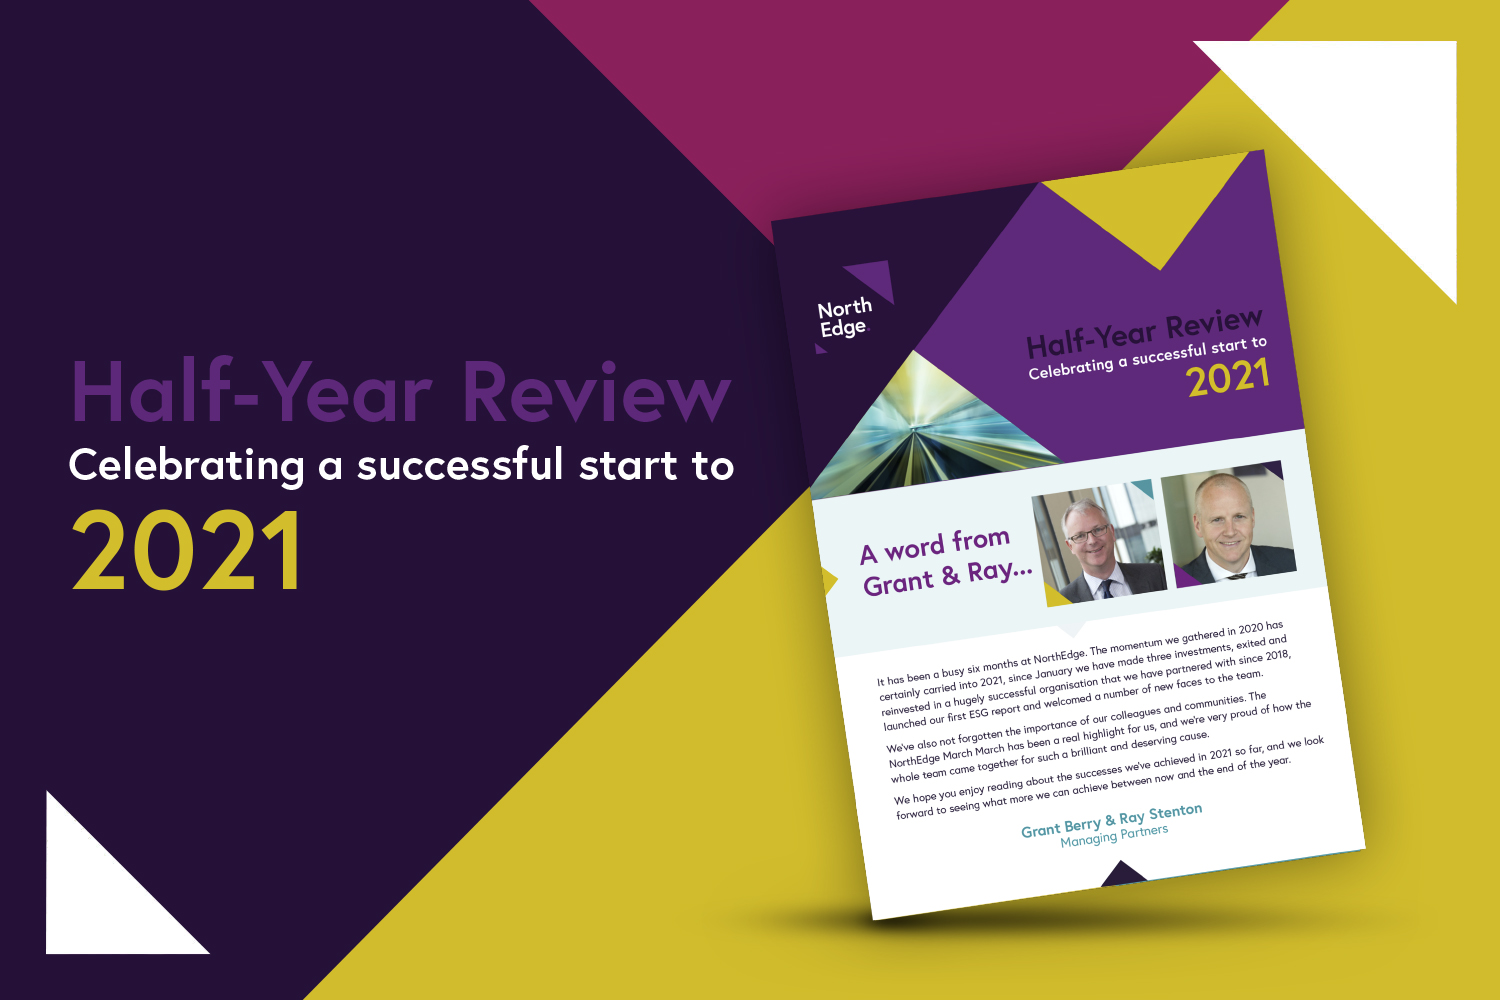 Half-Year Review: Celebrating a successful start to 2021